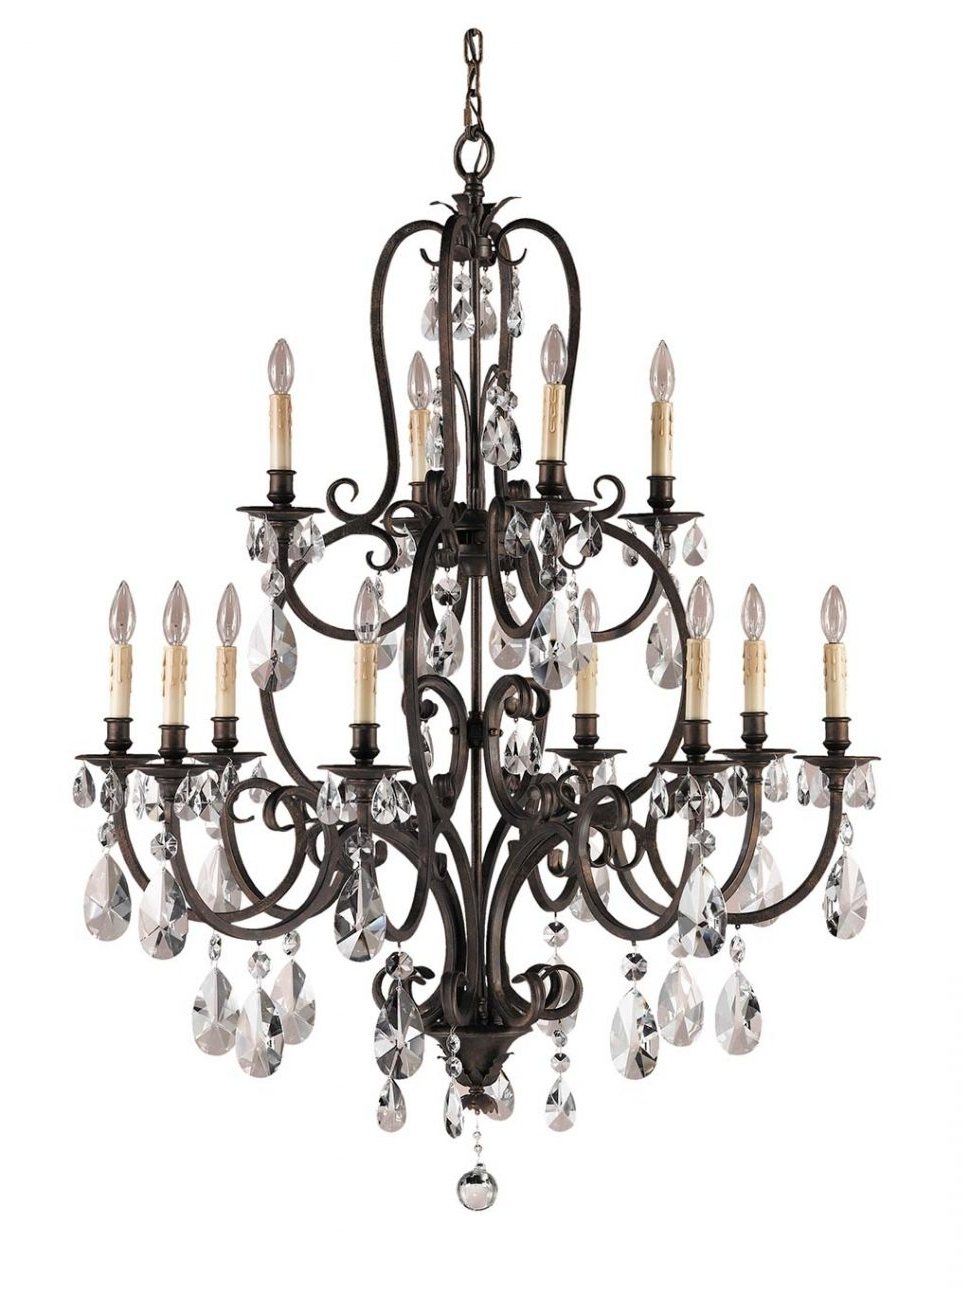 Feiss Chandeliers Regarding Famous Chandeliers Design : Marvelous Formidable Murray Feiss Chandeliers (View 7 of 20)